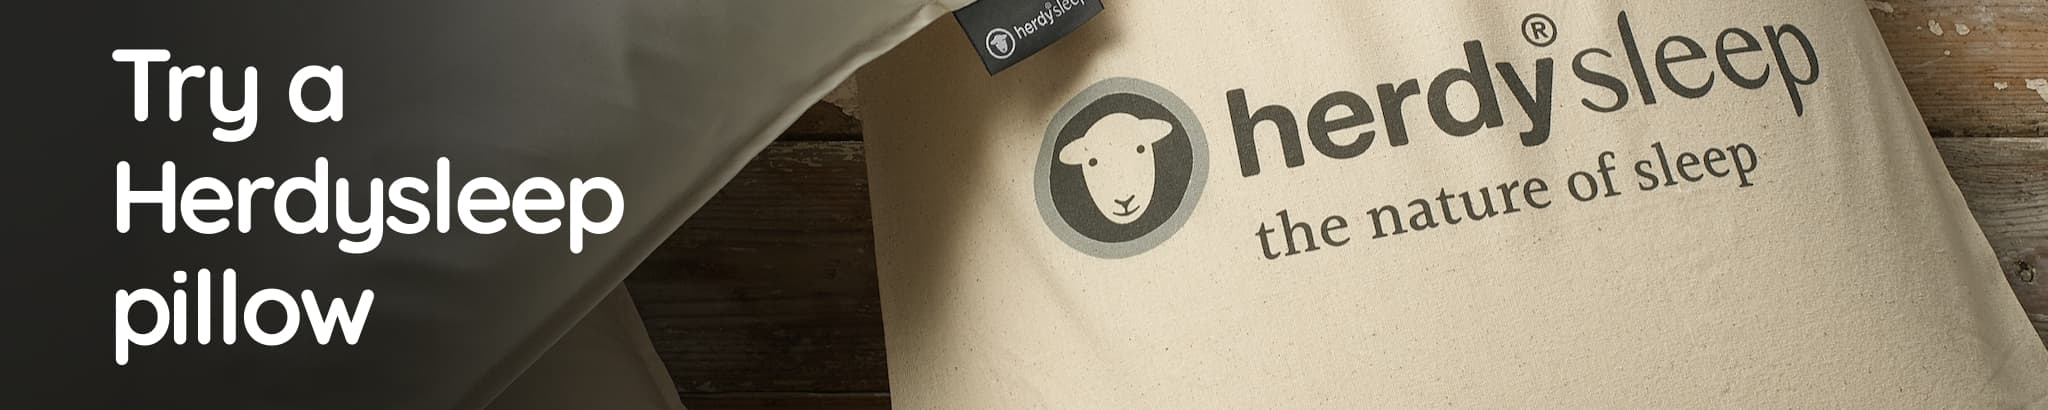 Try a Herdysleep pillow